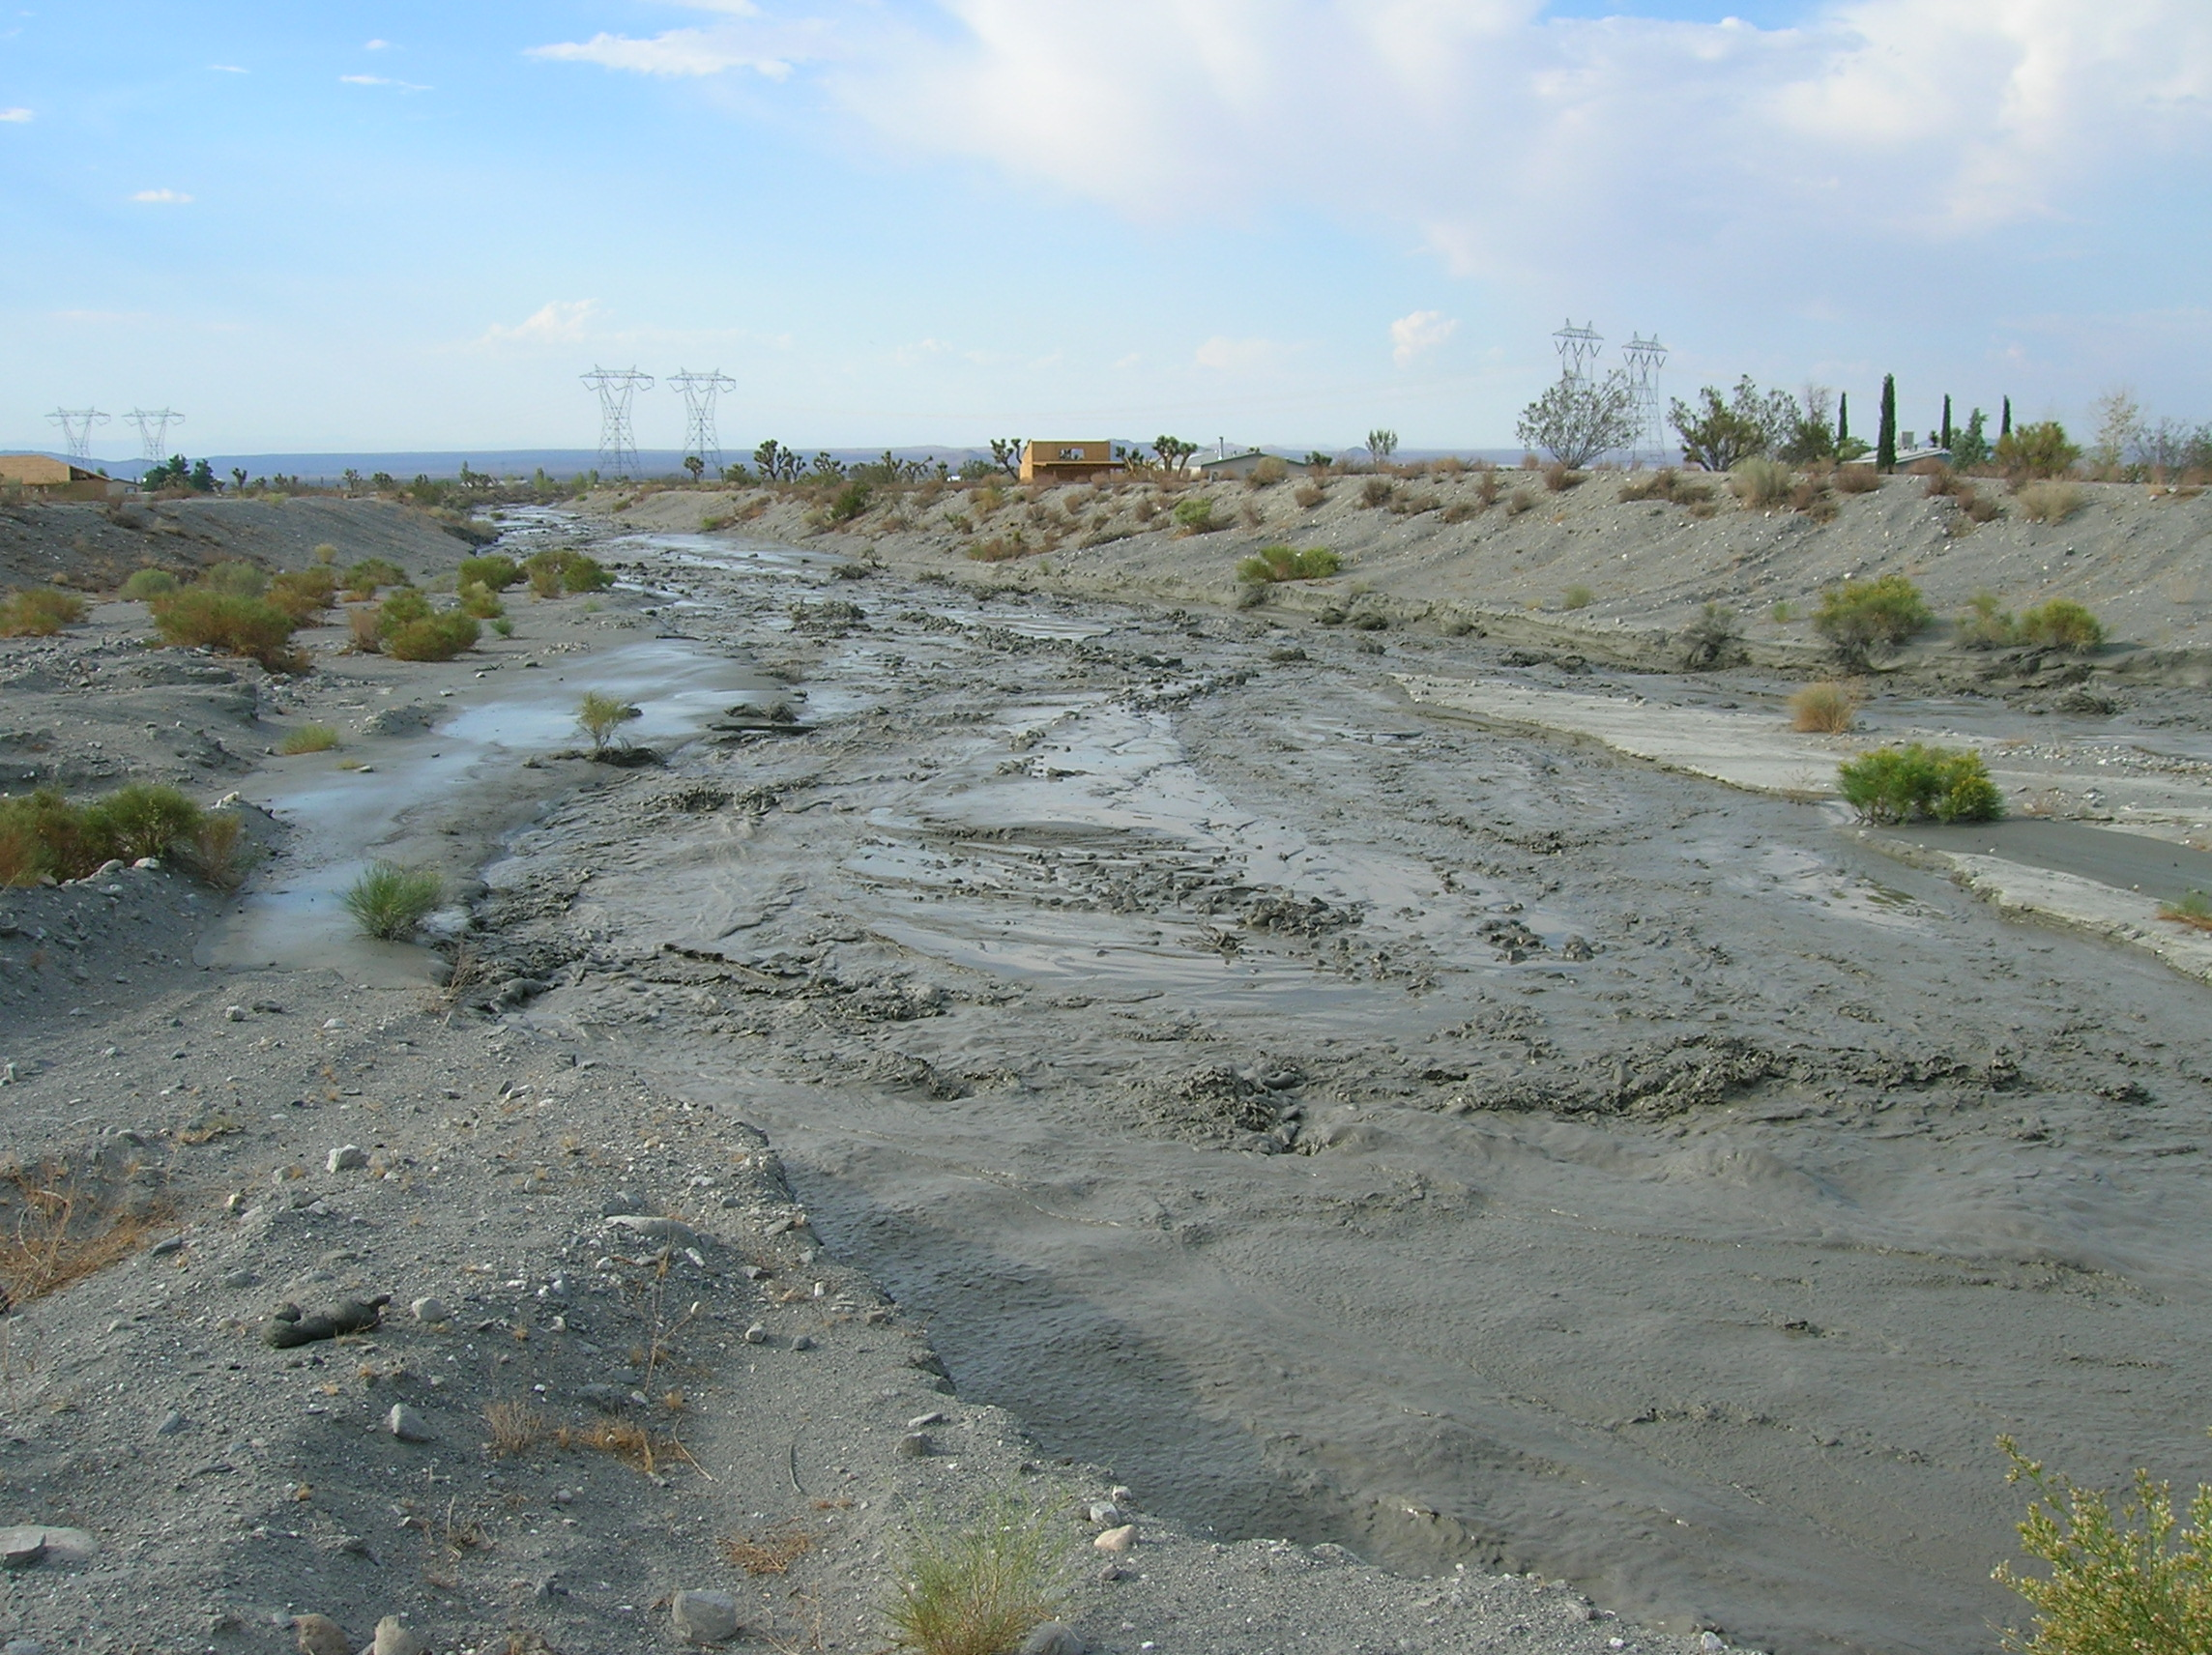 Broad flows and cutting water from previous floods